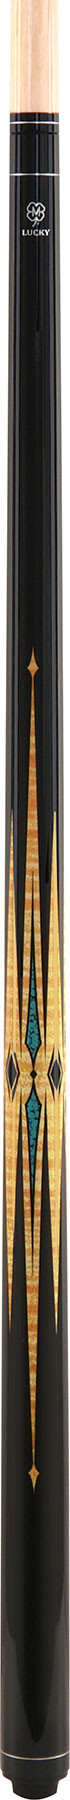 McDermott Lucky Pool Cue, L38, Black